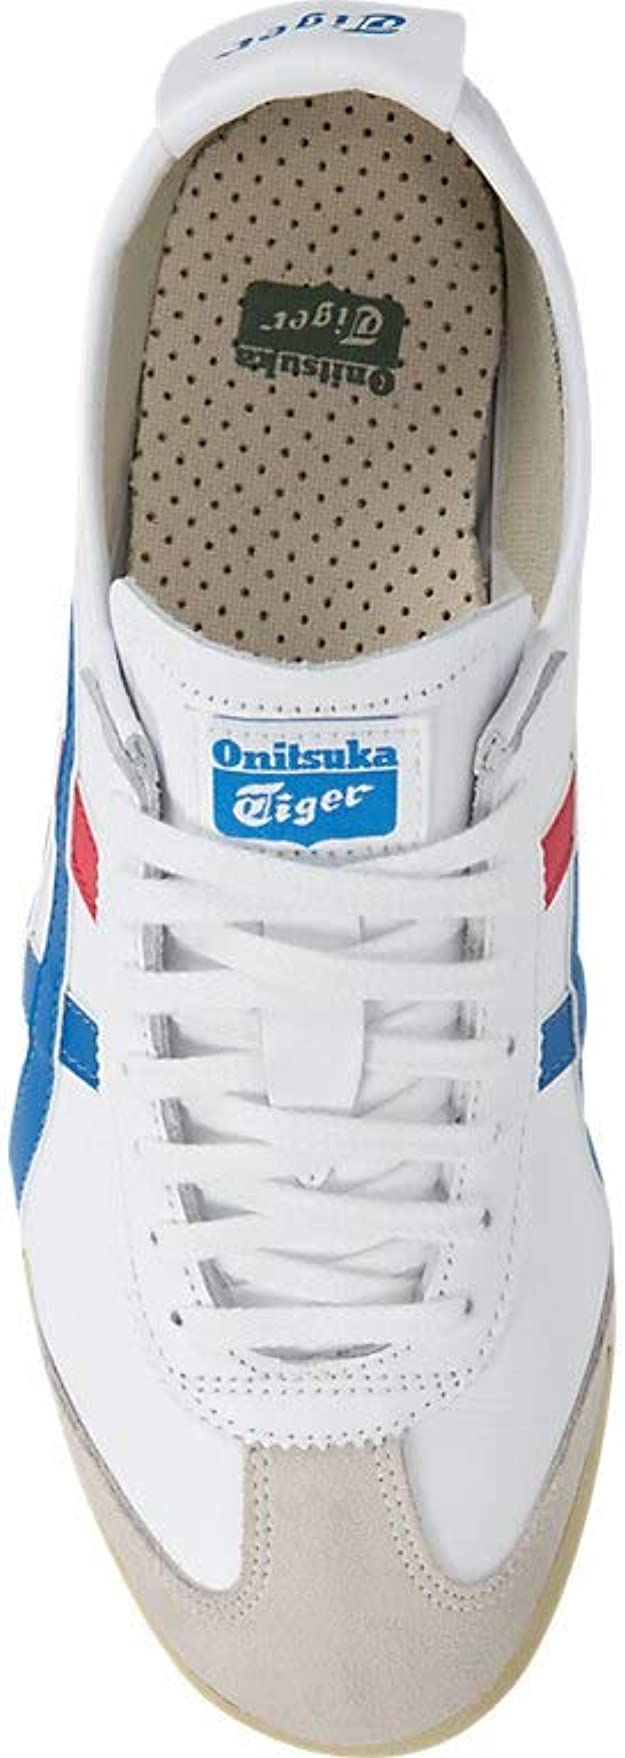 onitsuka tiger mexico 66 sd philippines white us jacket